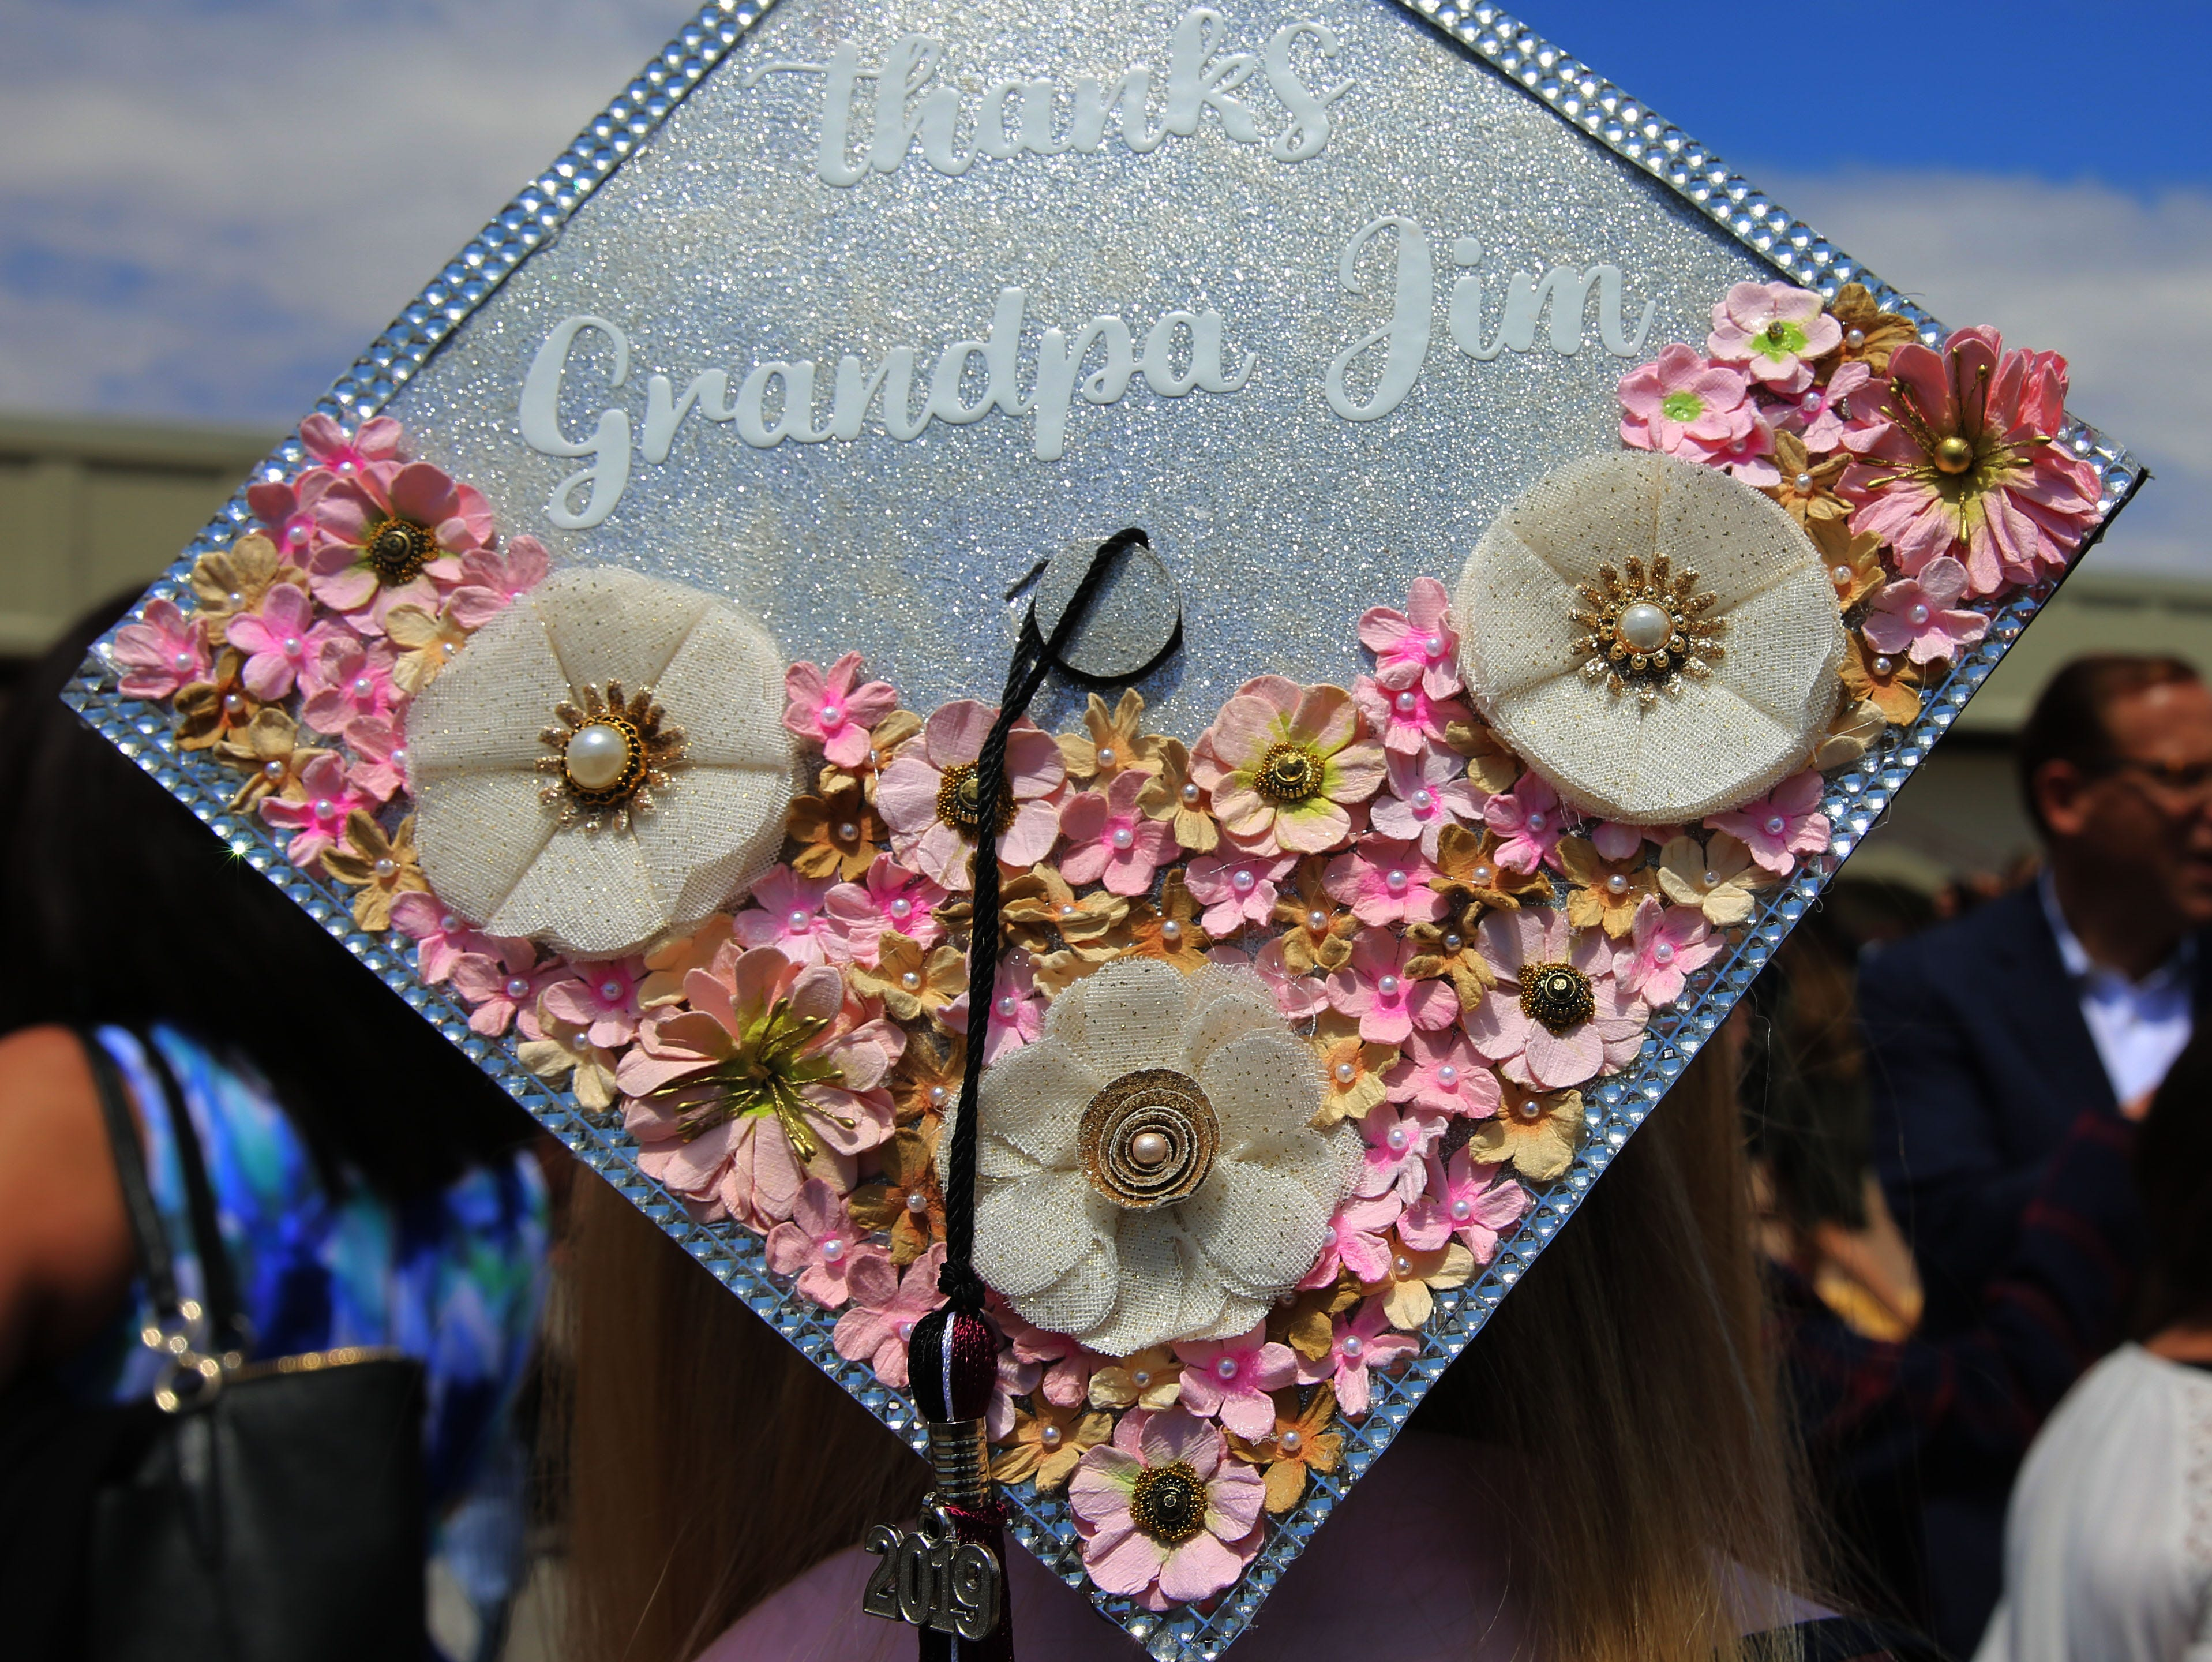 Allison Plummer, who earned a degree in animal science, said she was in high school, when she found out her grandfather left an educational trust for his grandchildren, to ensure they could go to college, without having to worry about money. Because of her grandfather's gift, Plummer said she was able to finish school debt free, so she decorated the mortar board on her cap to honor the man who gave her so much.